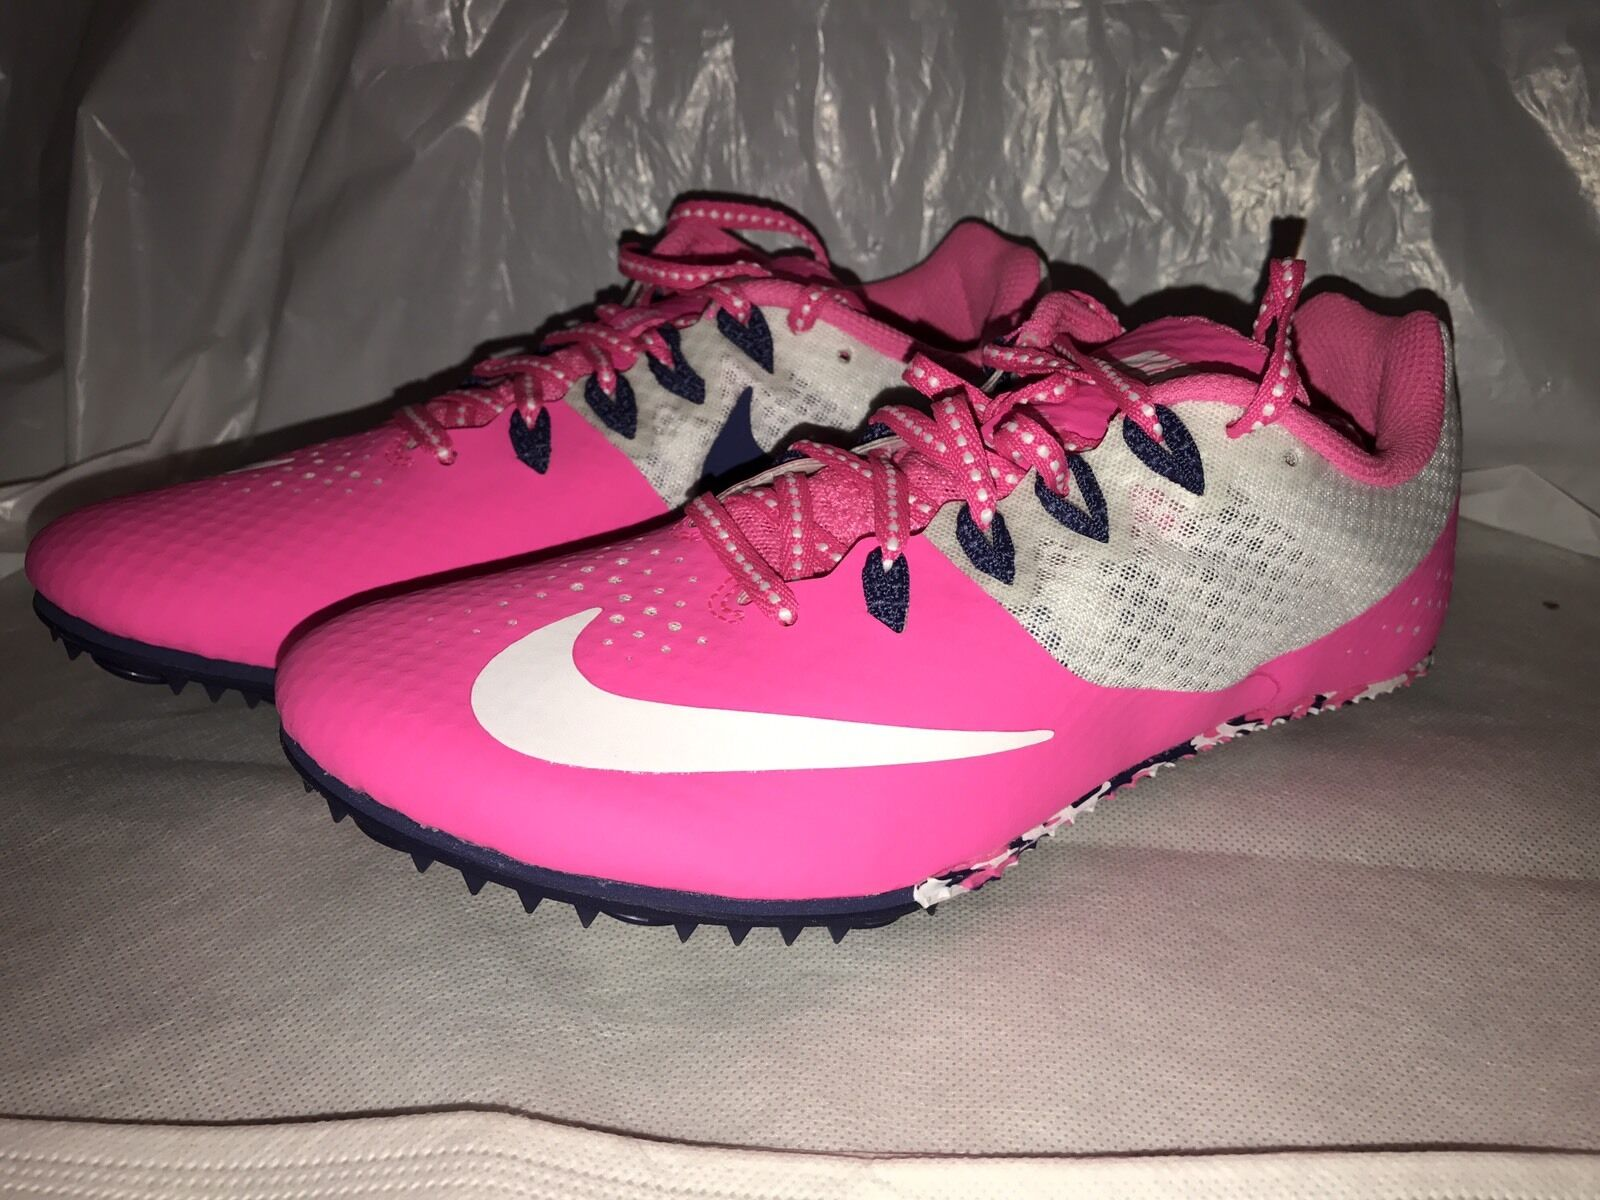 NEW NIKE Zoom Rival S 8 Track Shoes WOMEN'S 7 Pink White Purple 806558-615 Price reduction Wild casual shoes